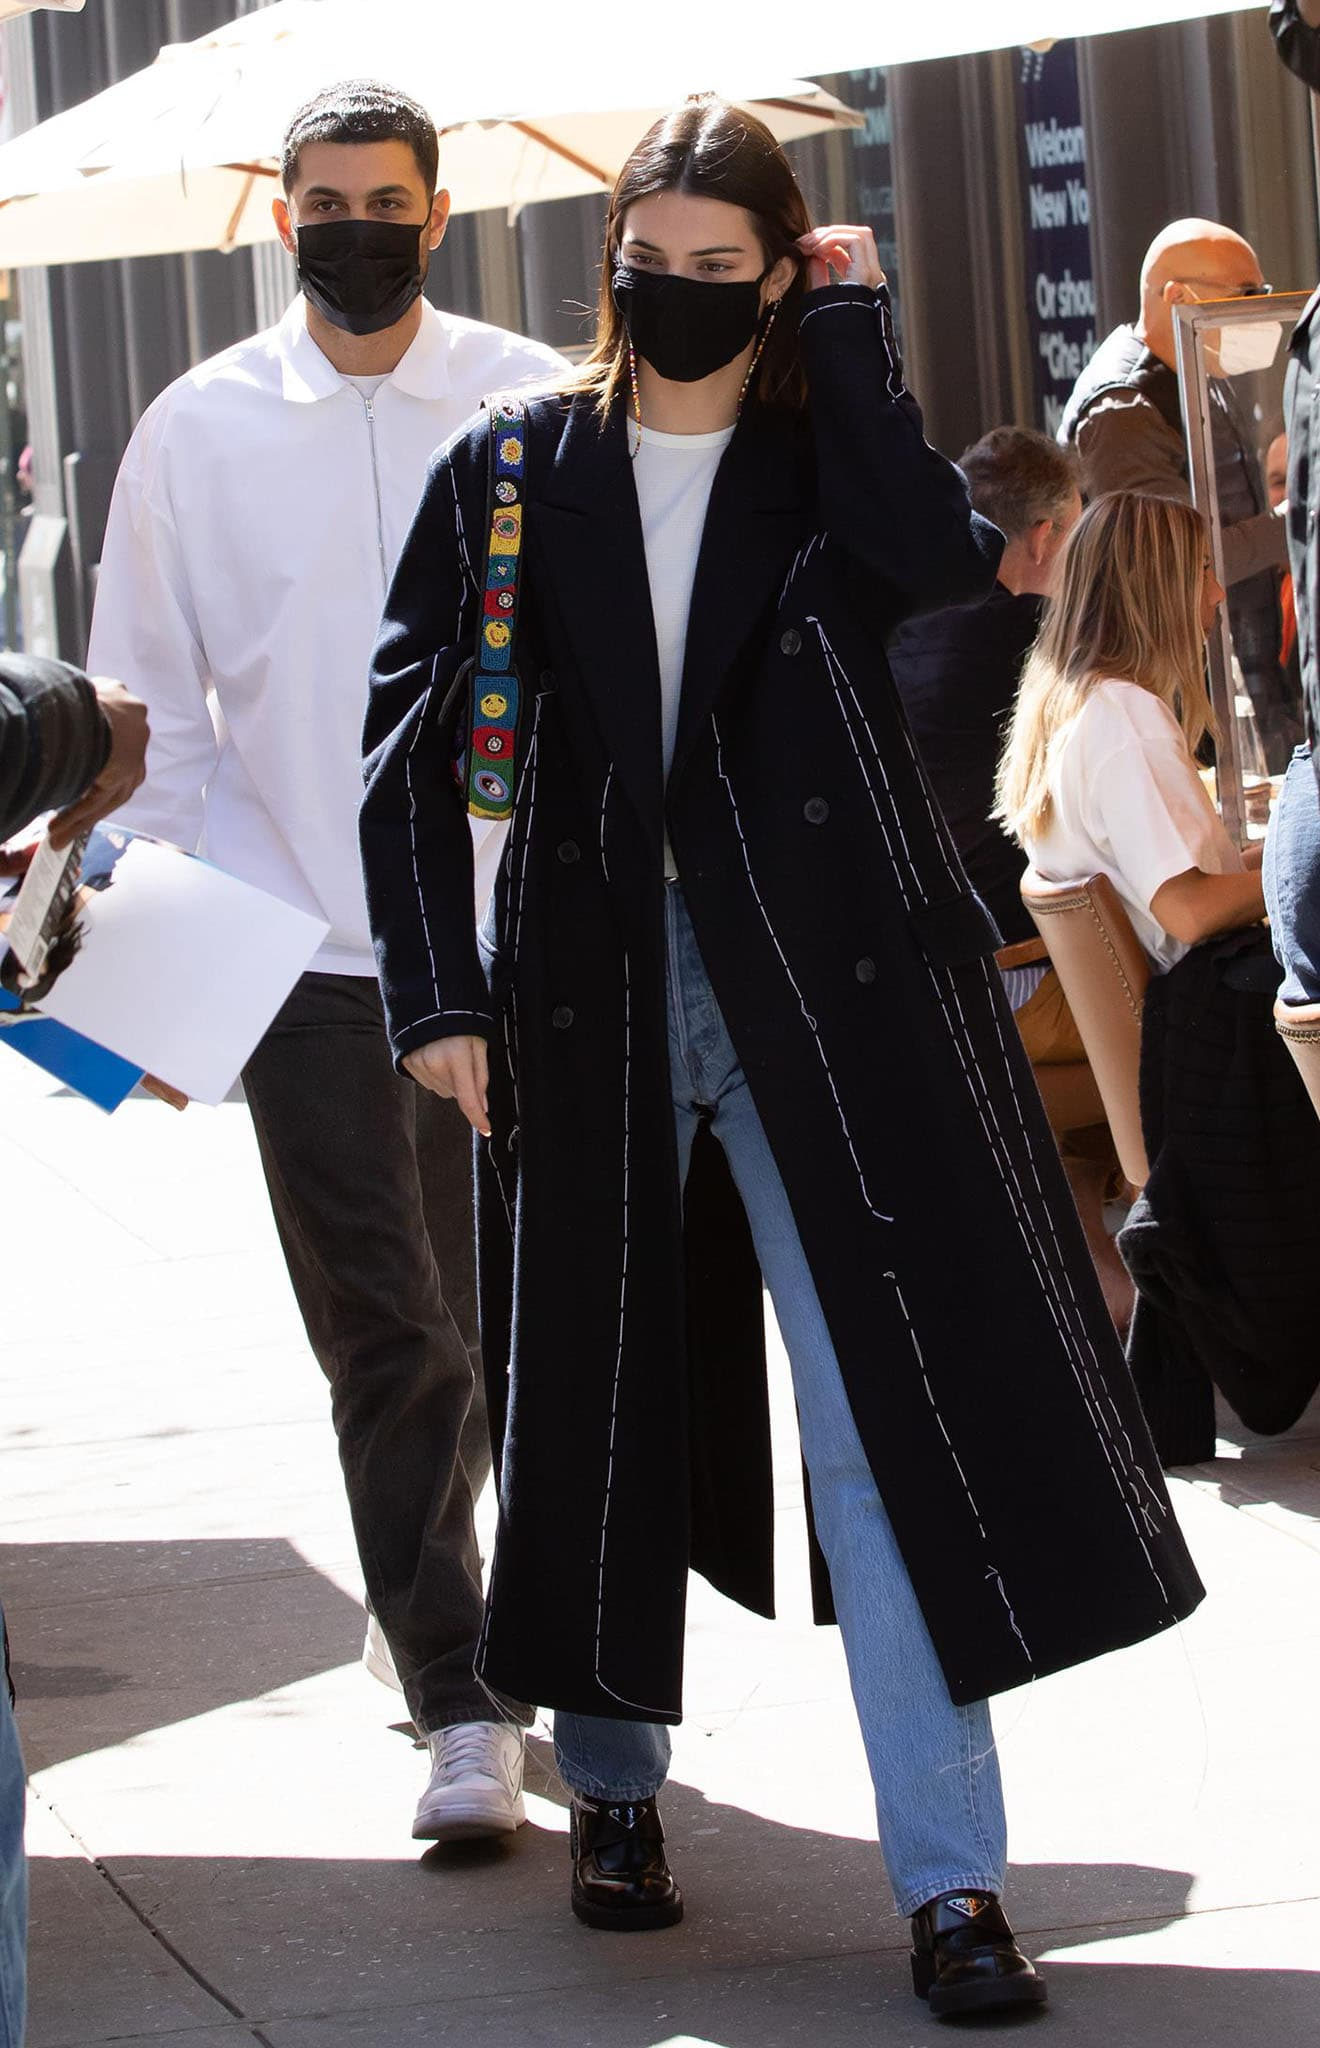 Kendall Jenner, pictured in a Rohk embroidered coat, Still Here jeans, and Prada leather loafers, is currently dealing with death threats and stalking incidents